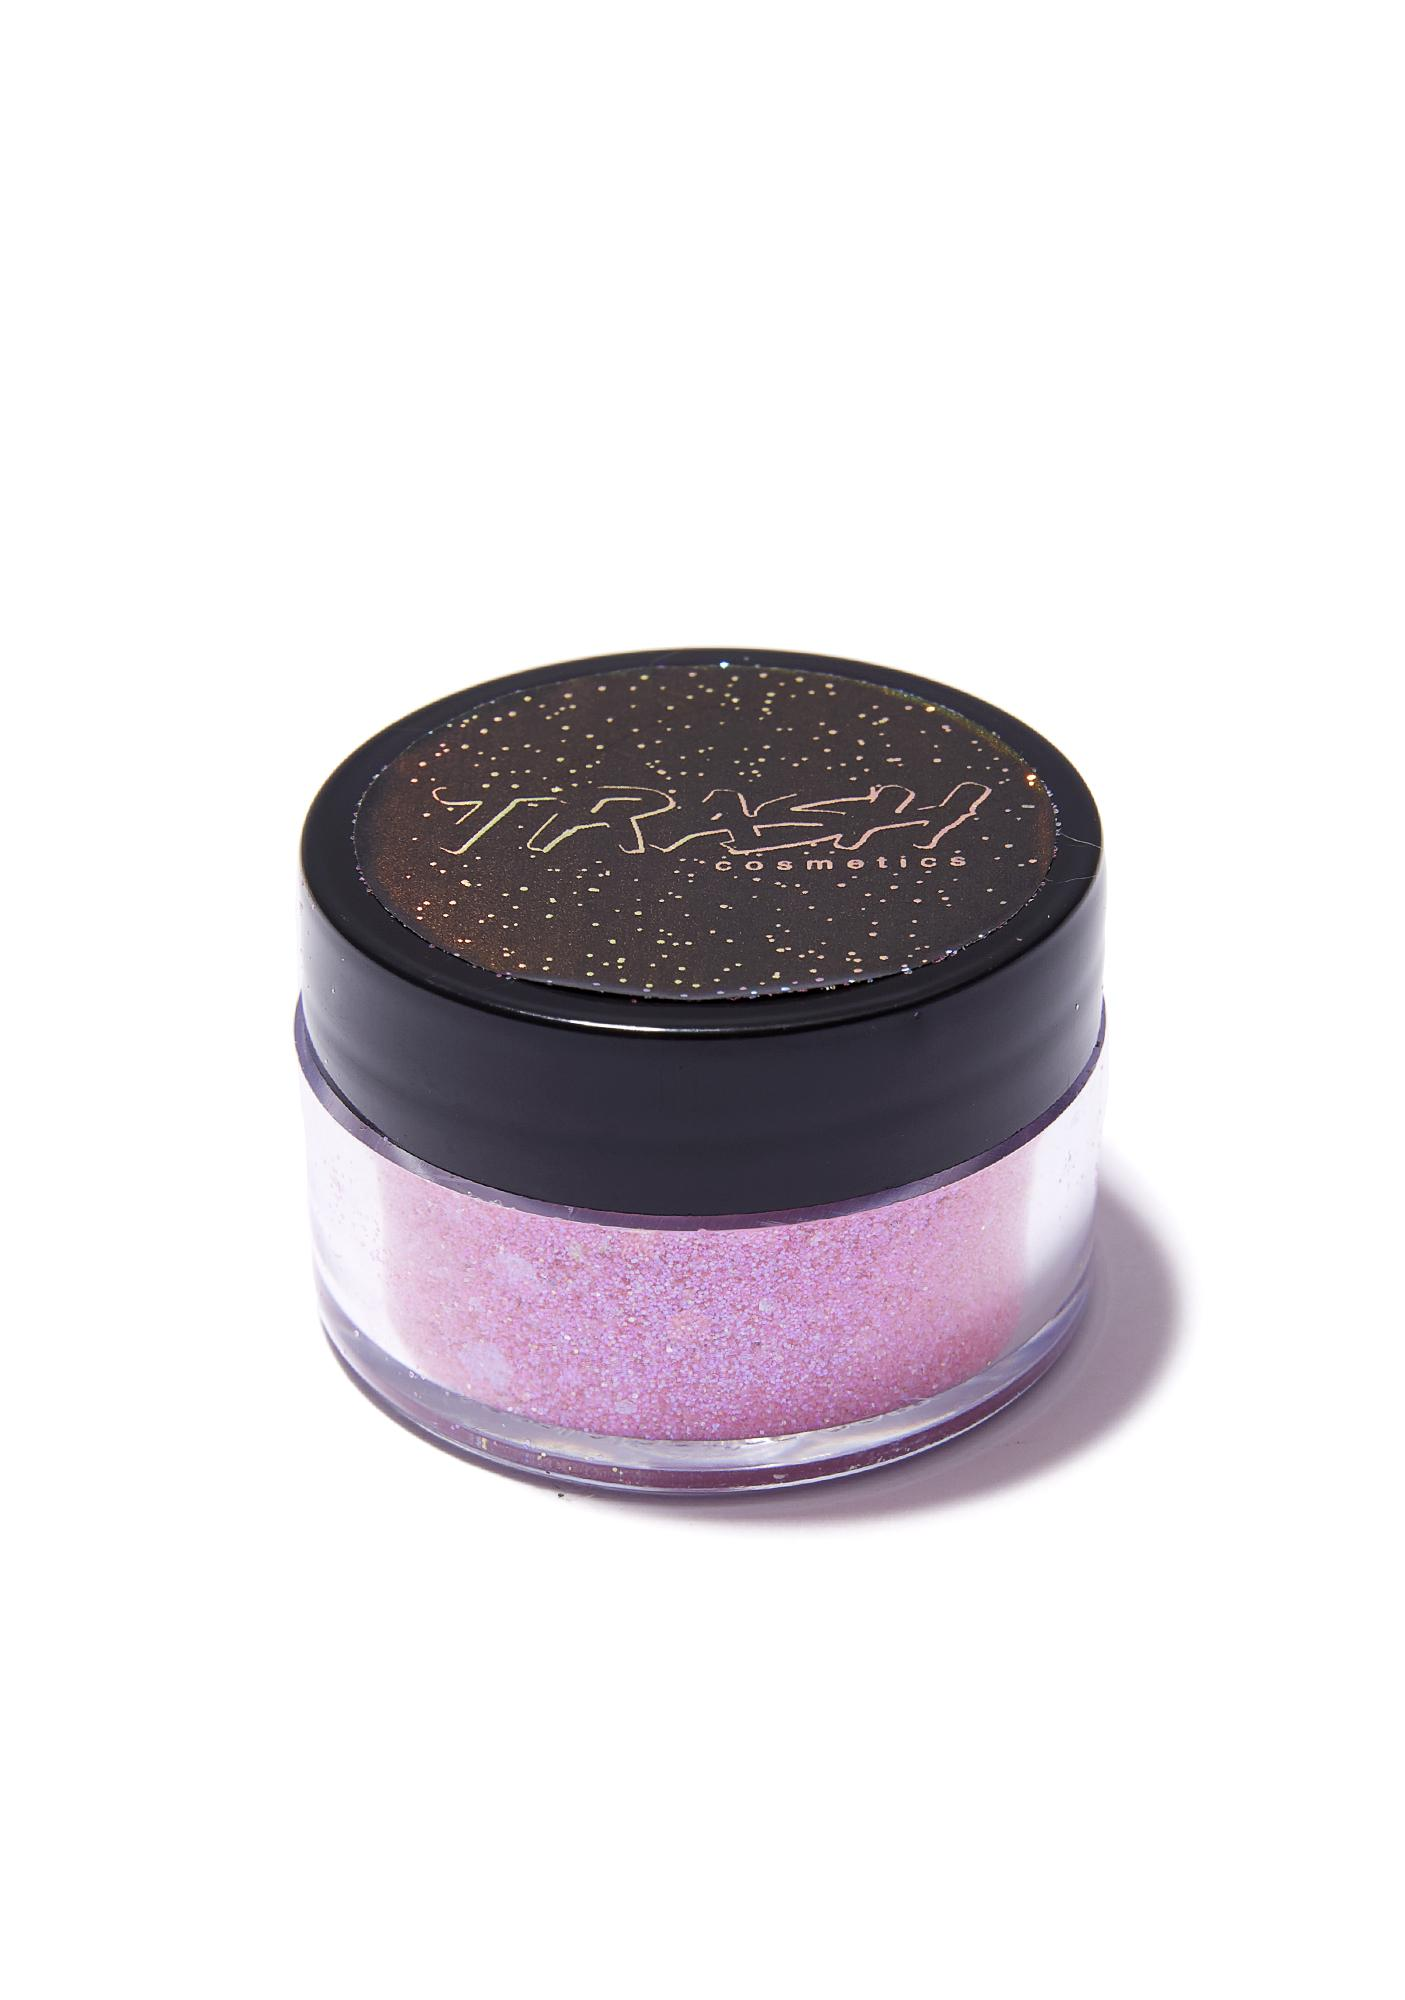 TrashCosmetics Flamingle Loose Glitter